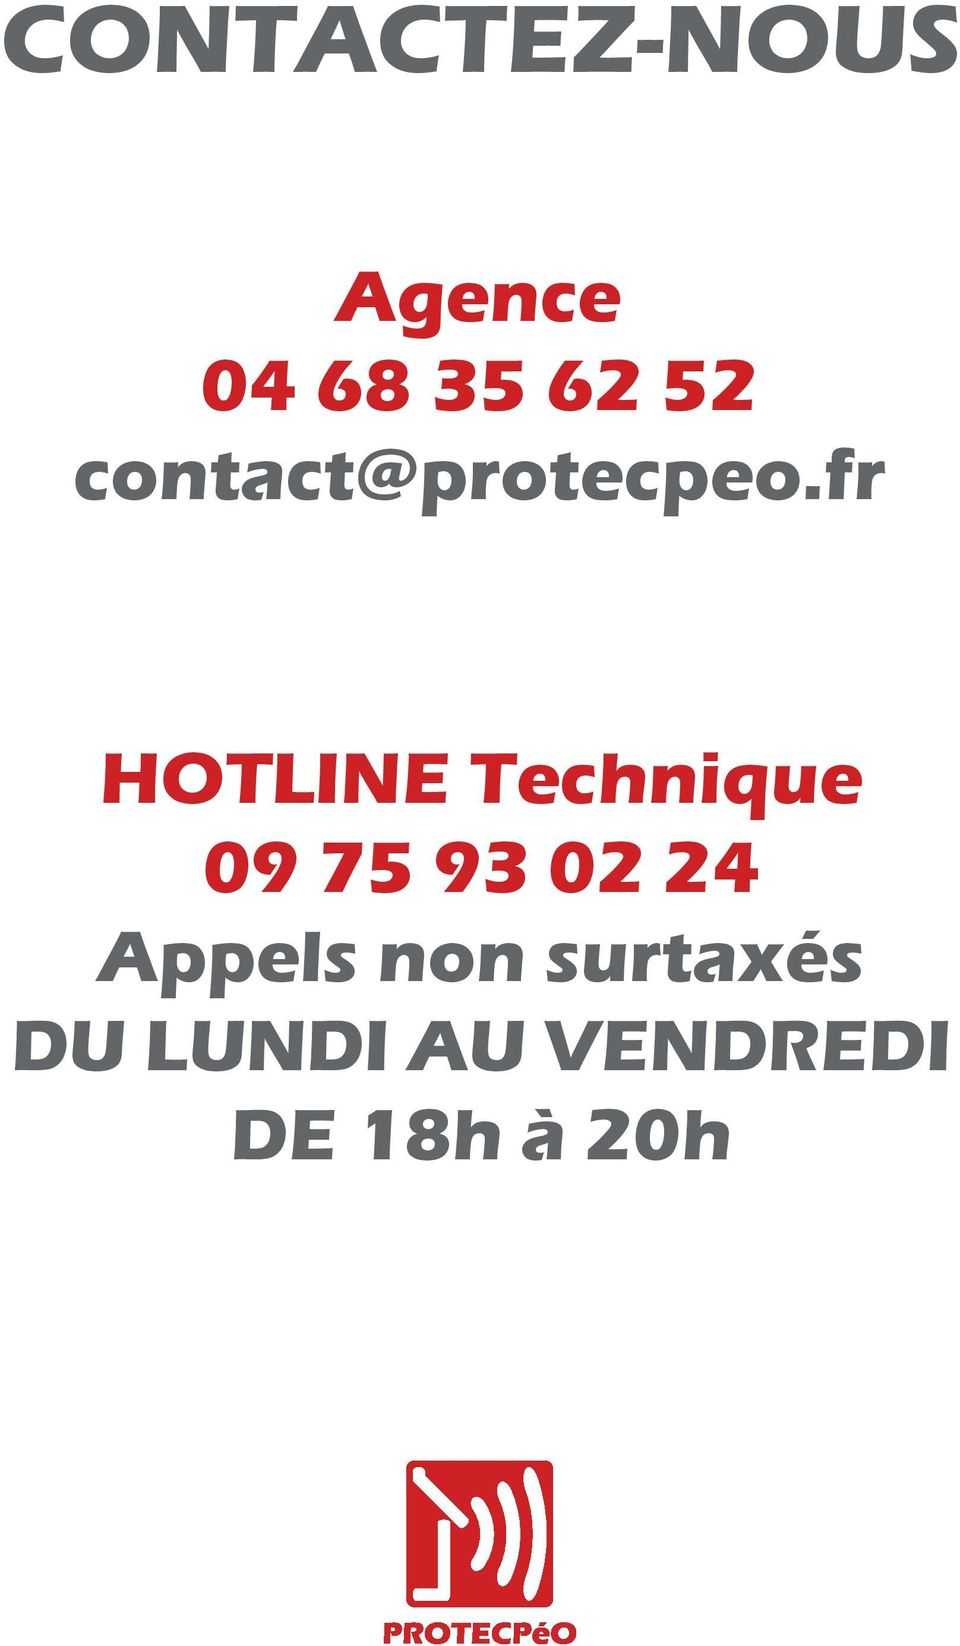 fr HOTLINE Technique 09 75 93 02 24